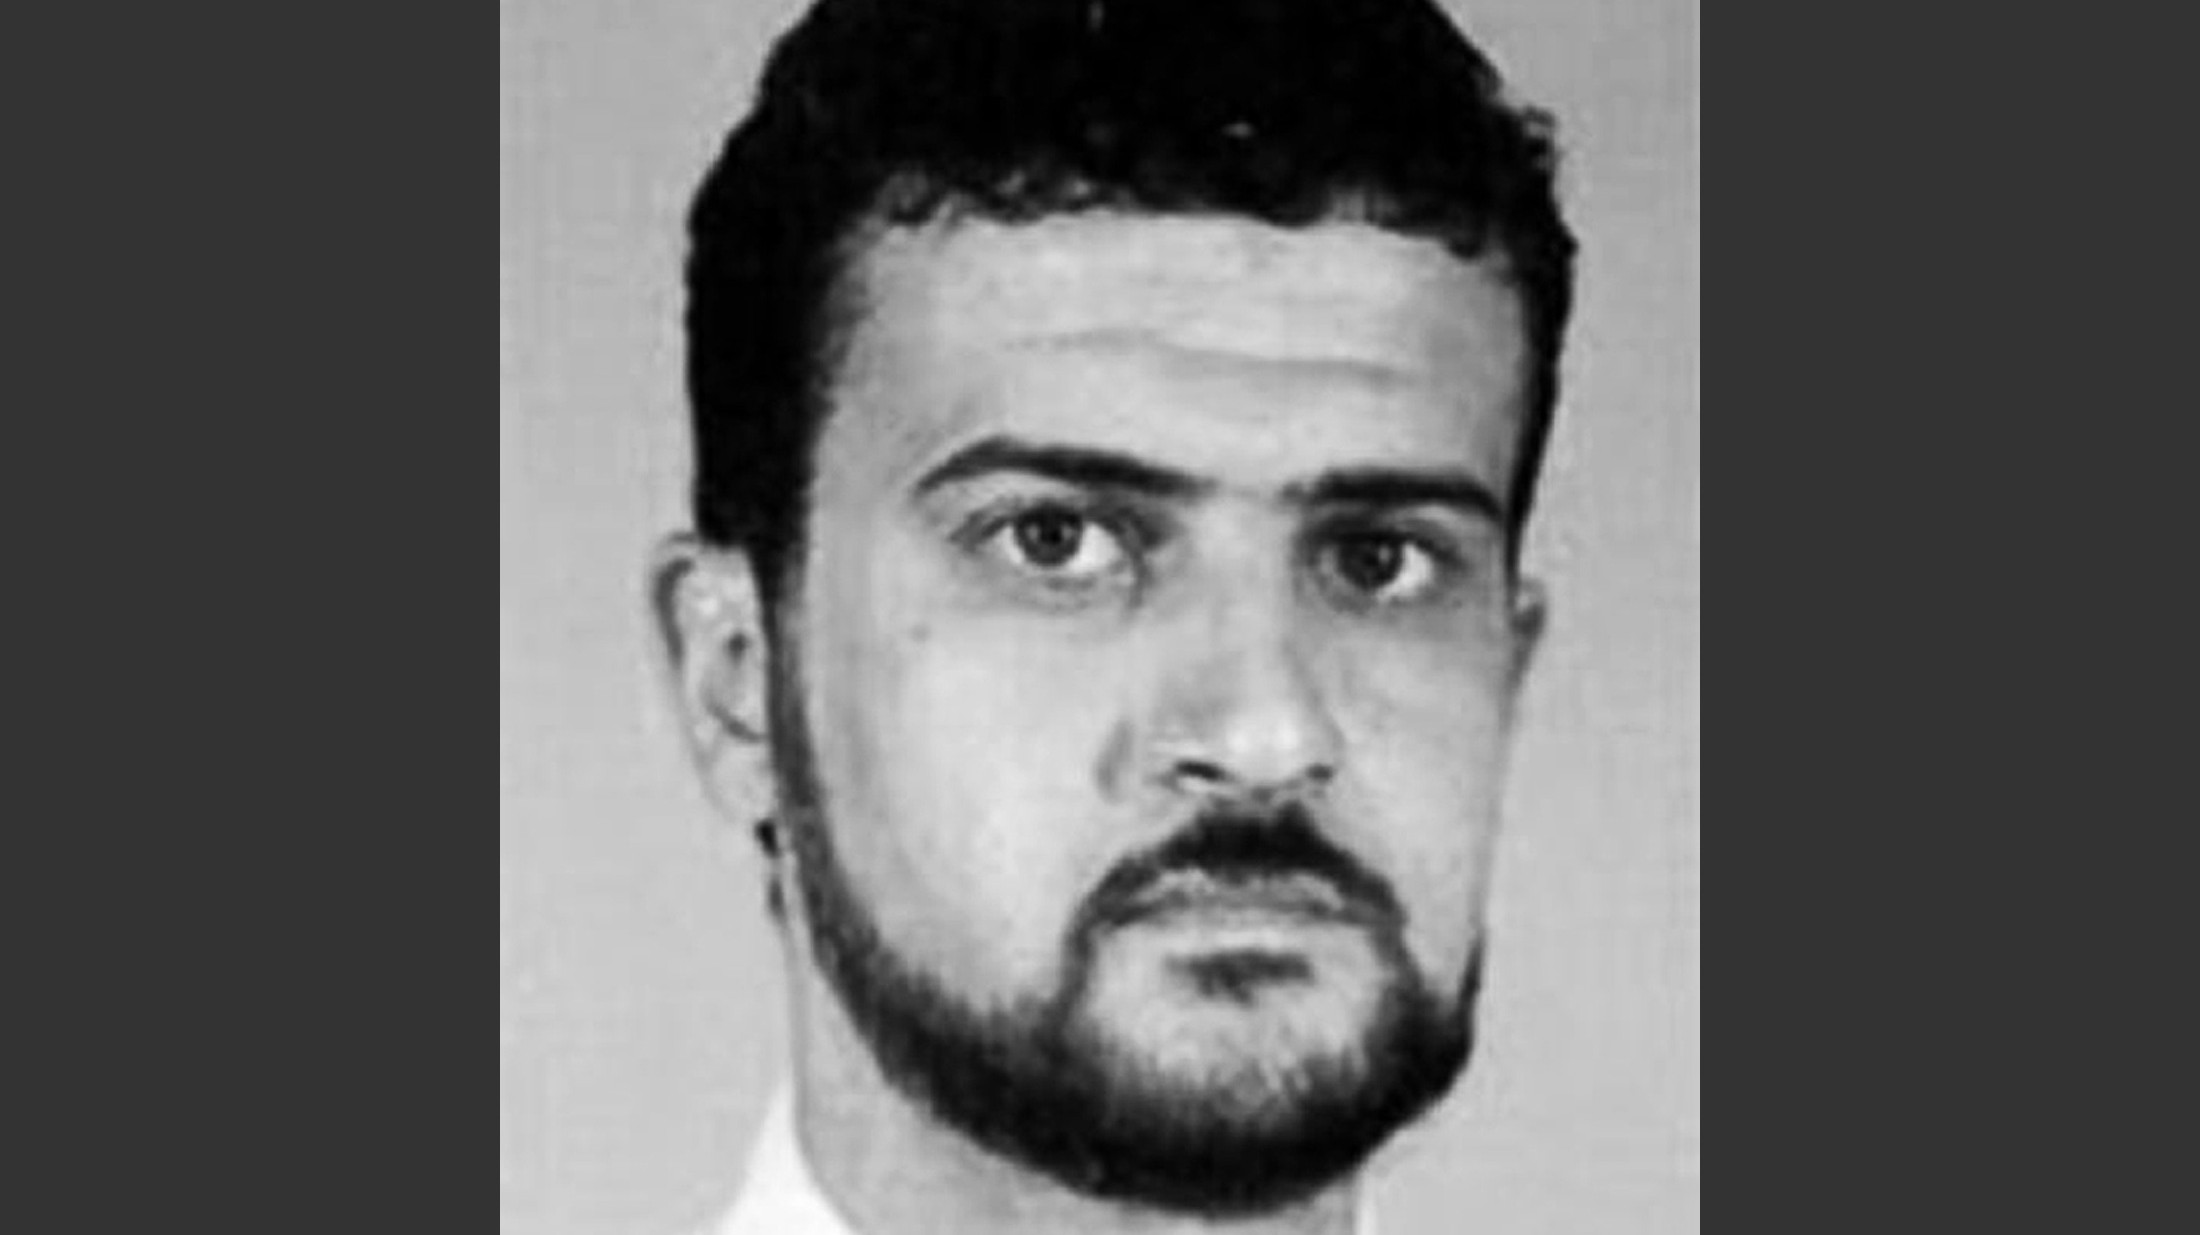 Al Qaeda Embassy Bombing Suspect Dies in NYC 10 Days Before Trial